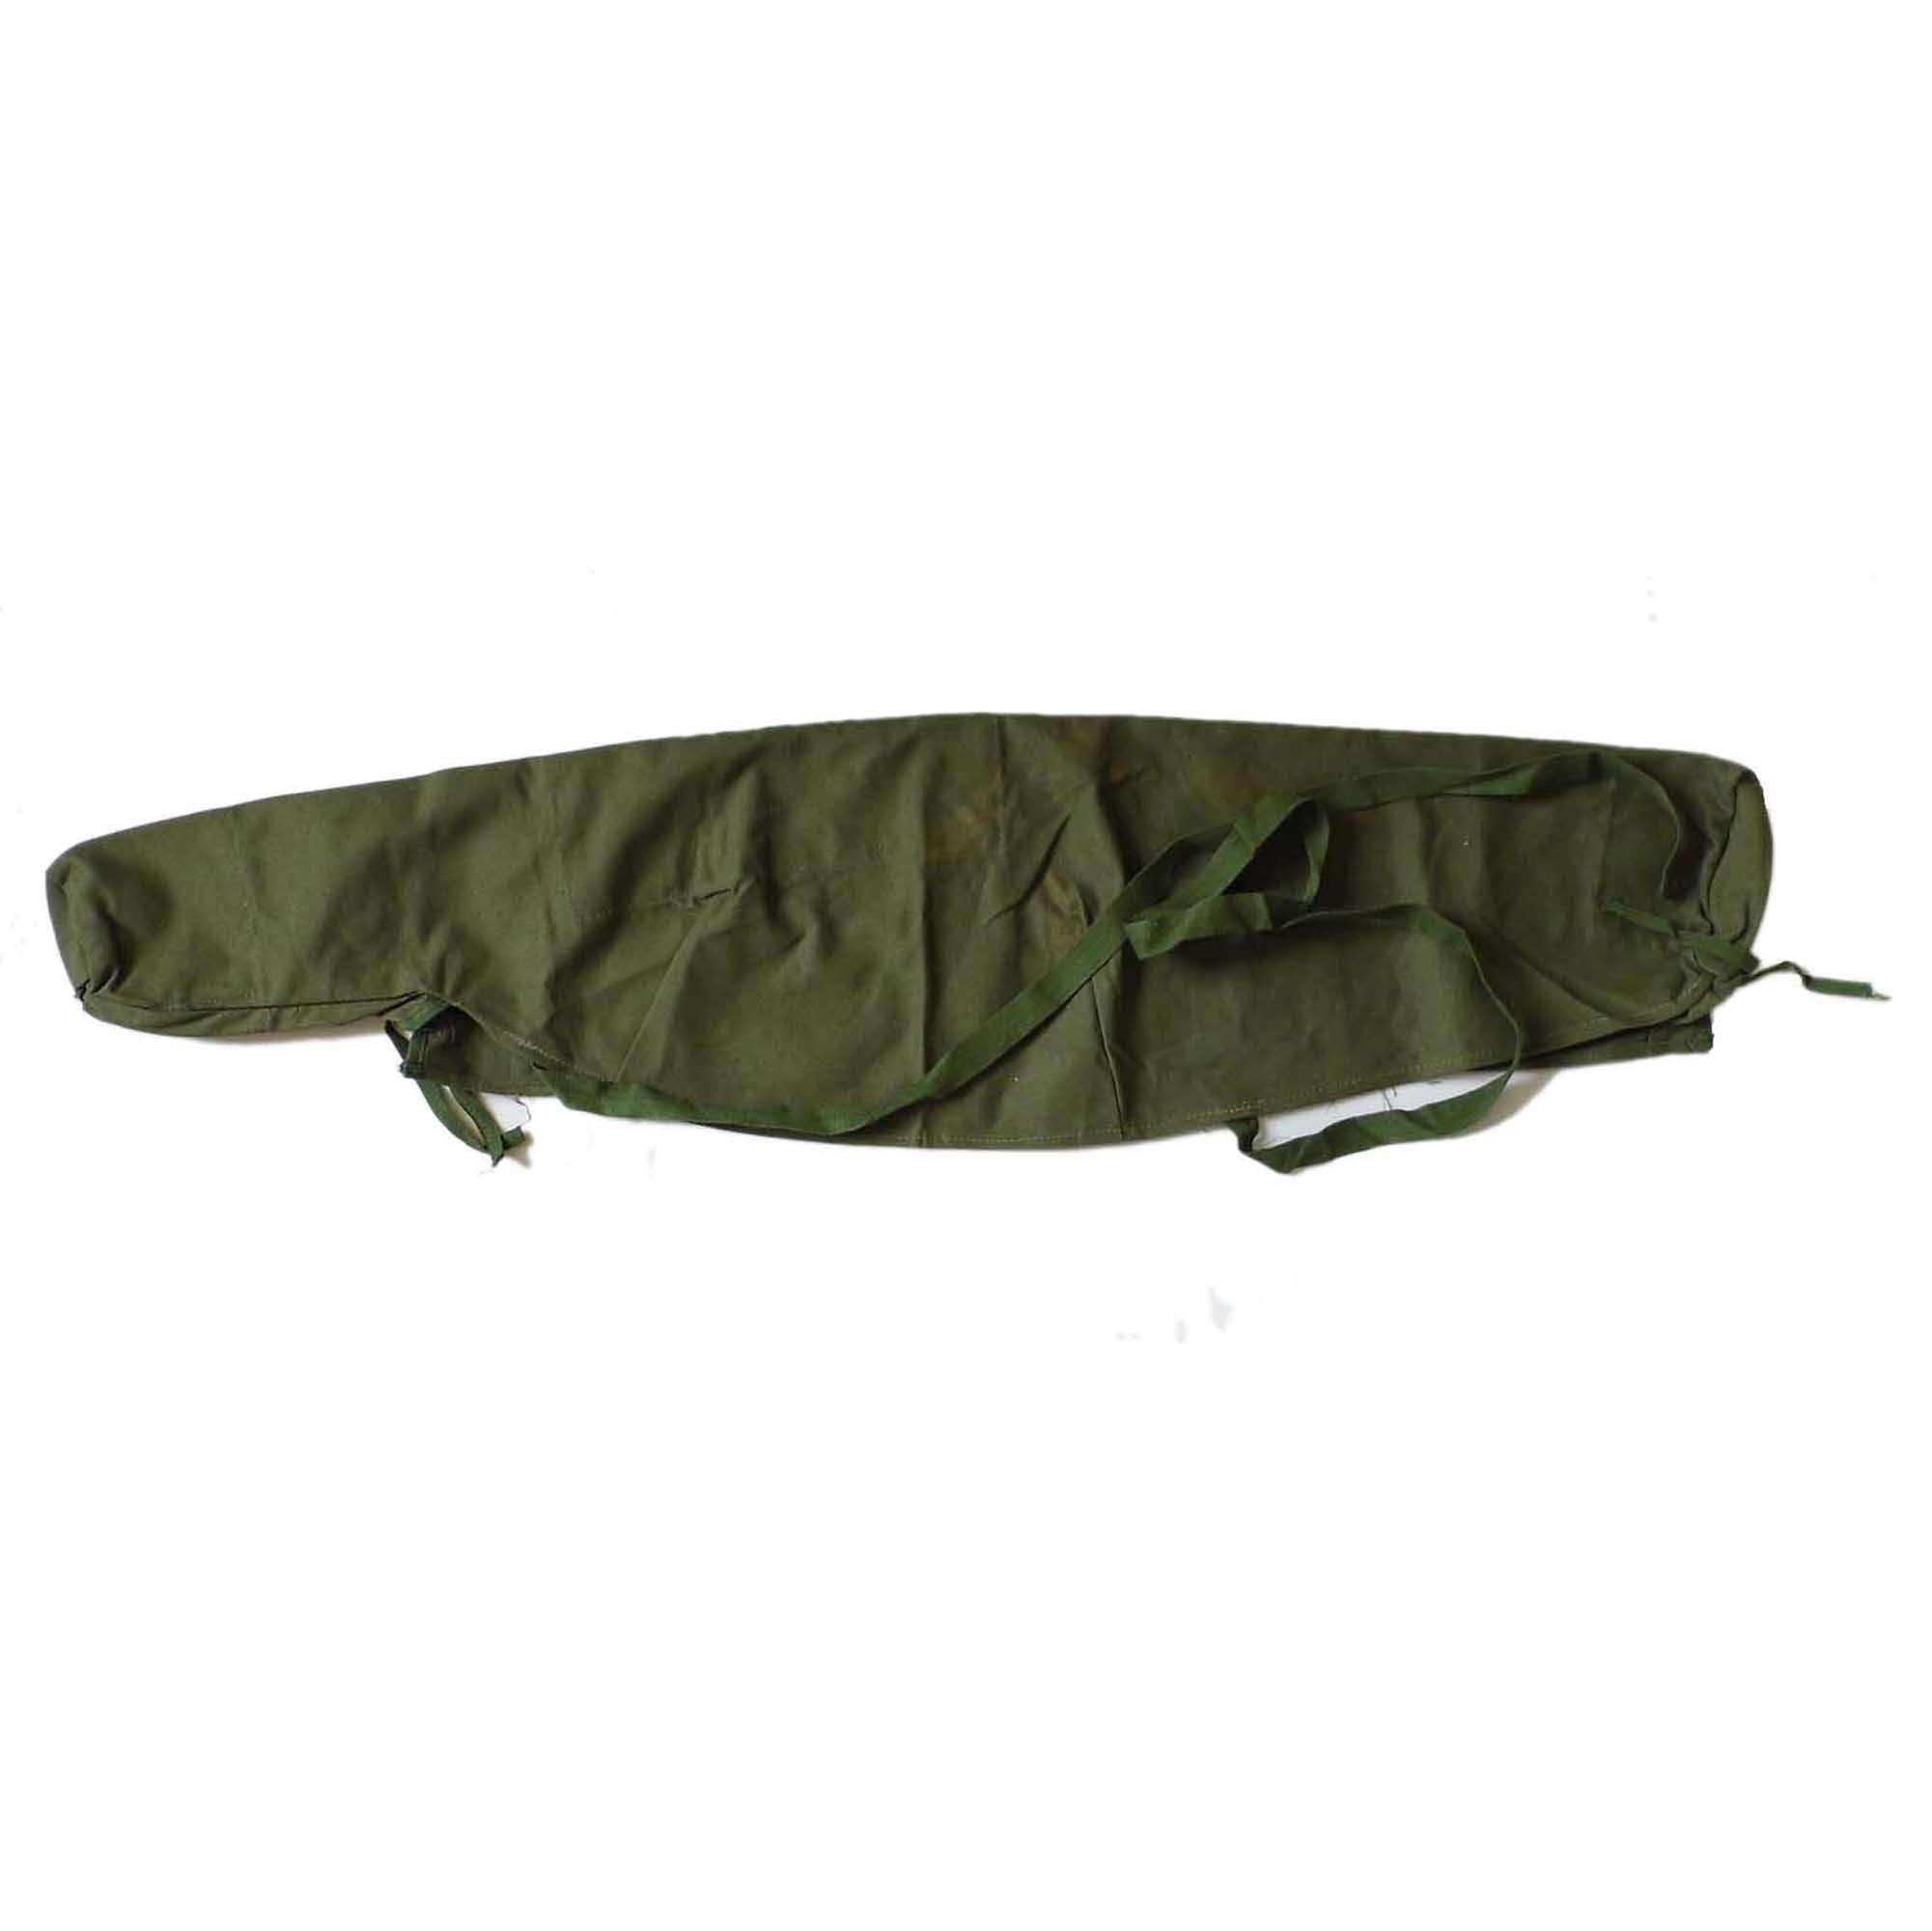 HOME DAILY SALE Original Surplus Green Type 81 Rifle Case Tactical